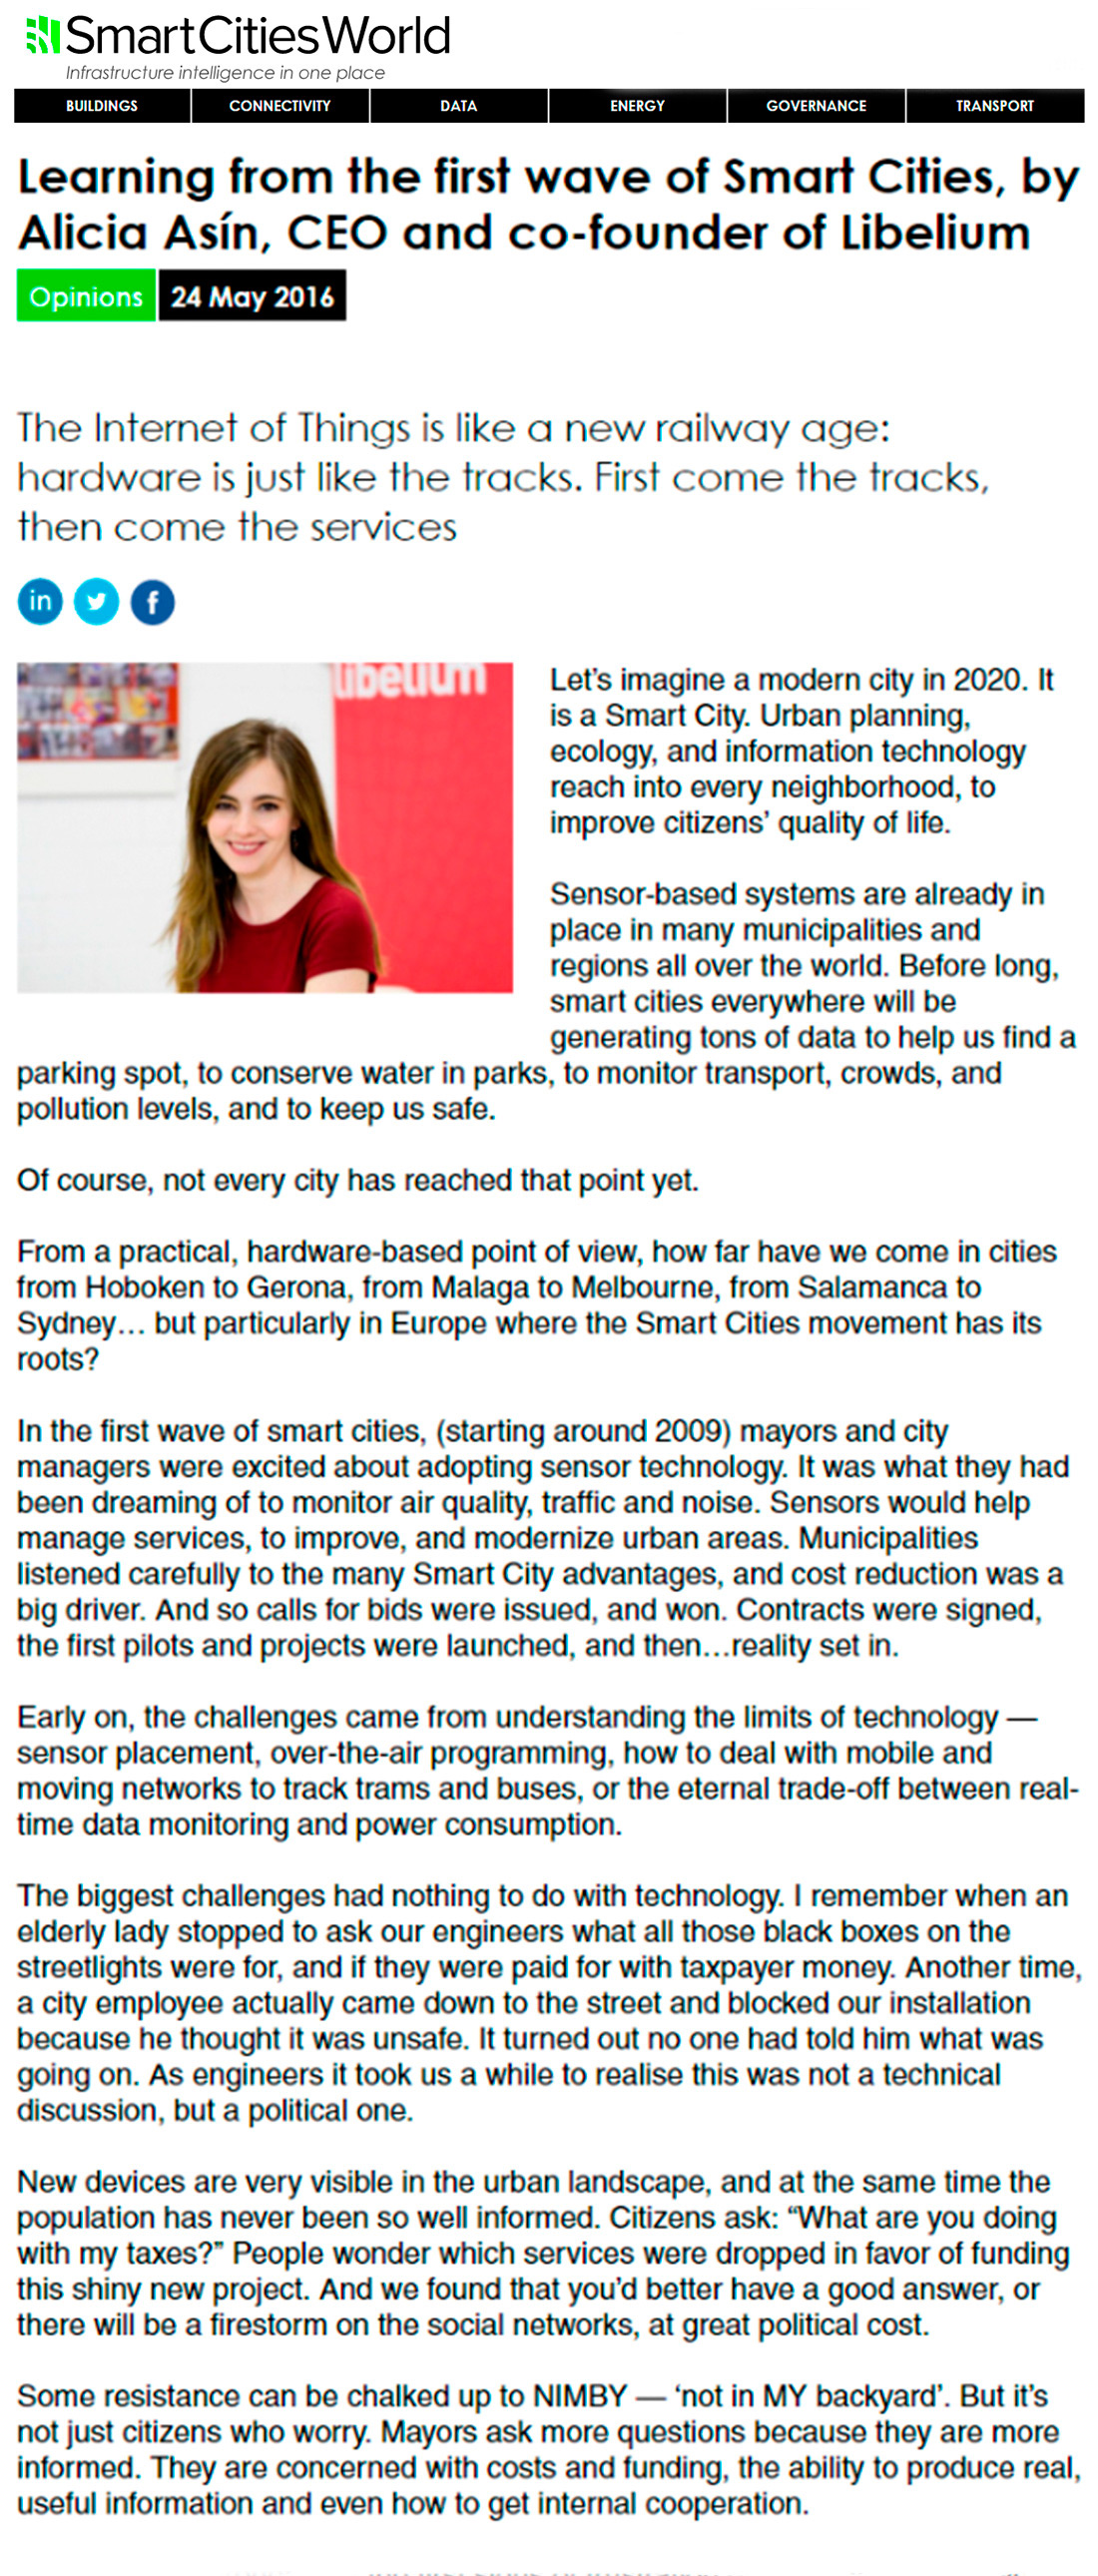 SmartCitiesWorld.net-Alicia Asín article